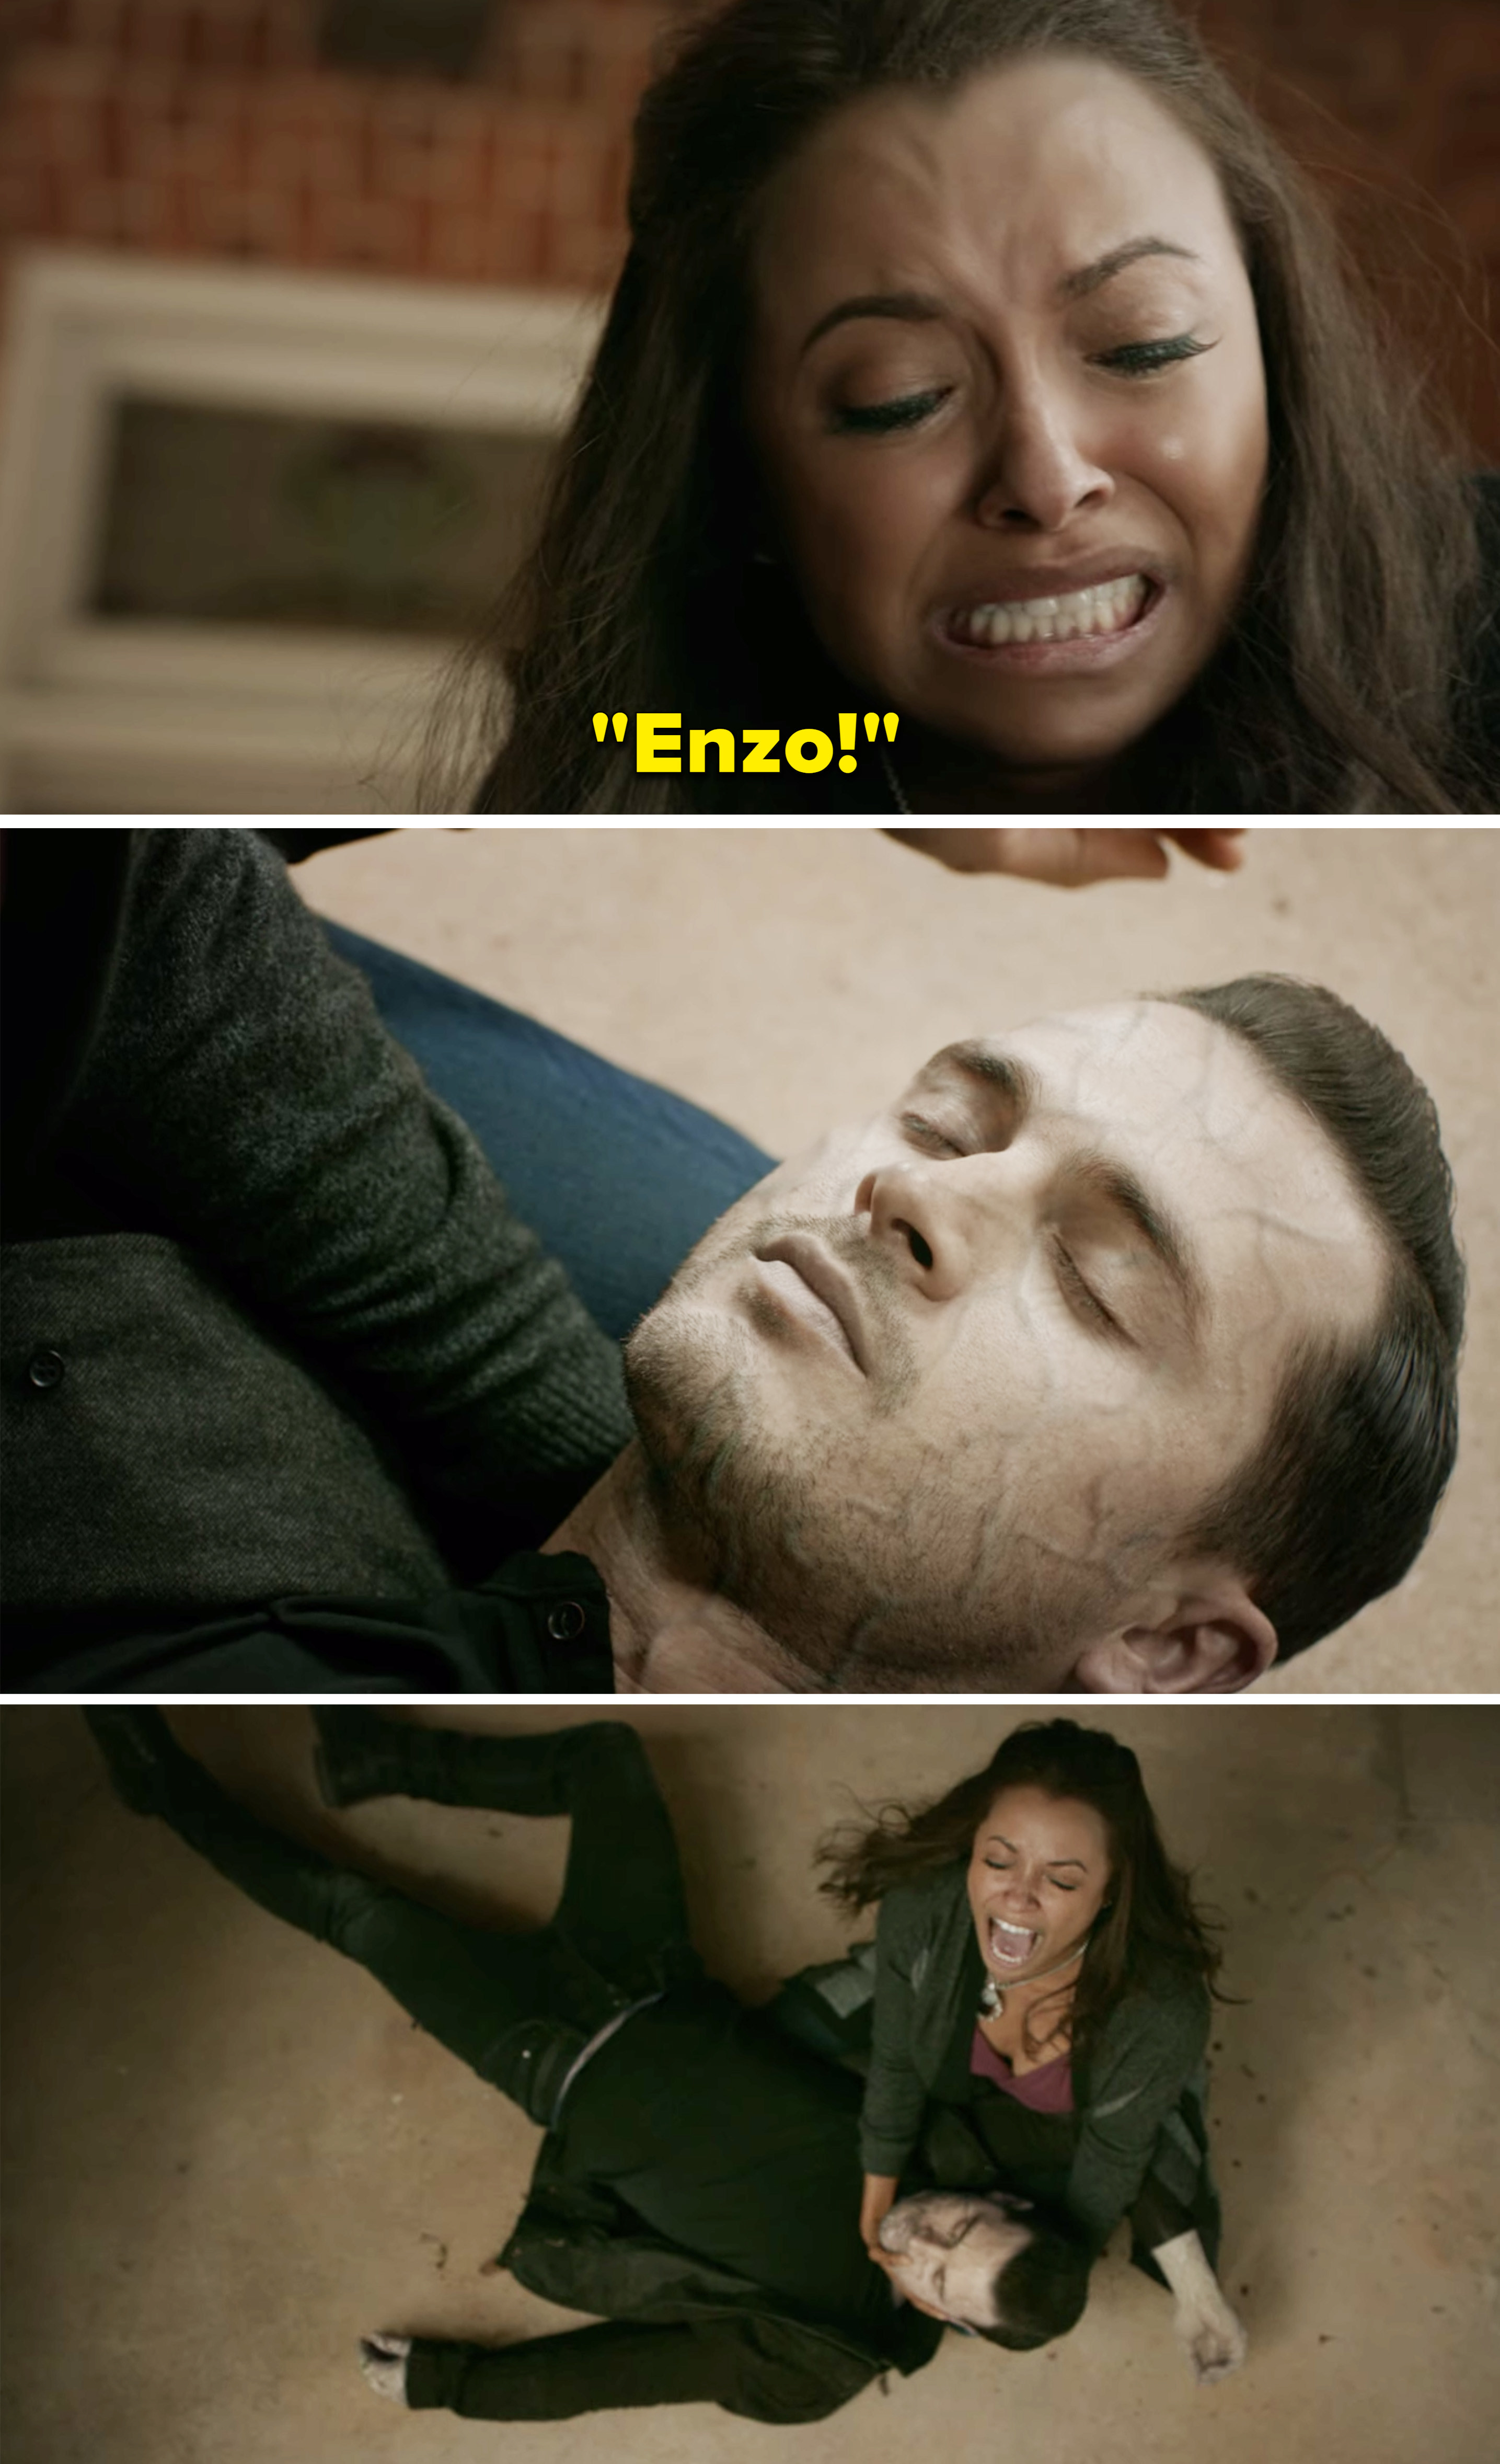 Bonnie crying over Enzo's body